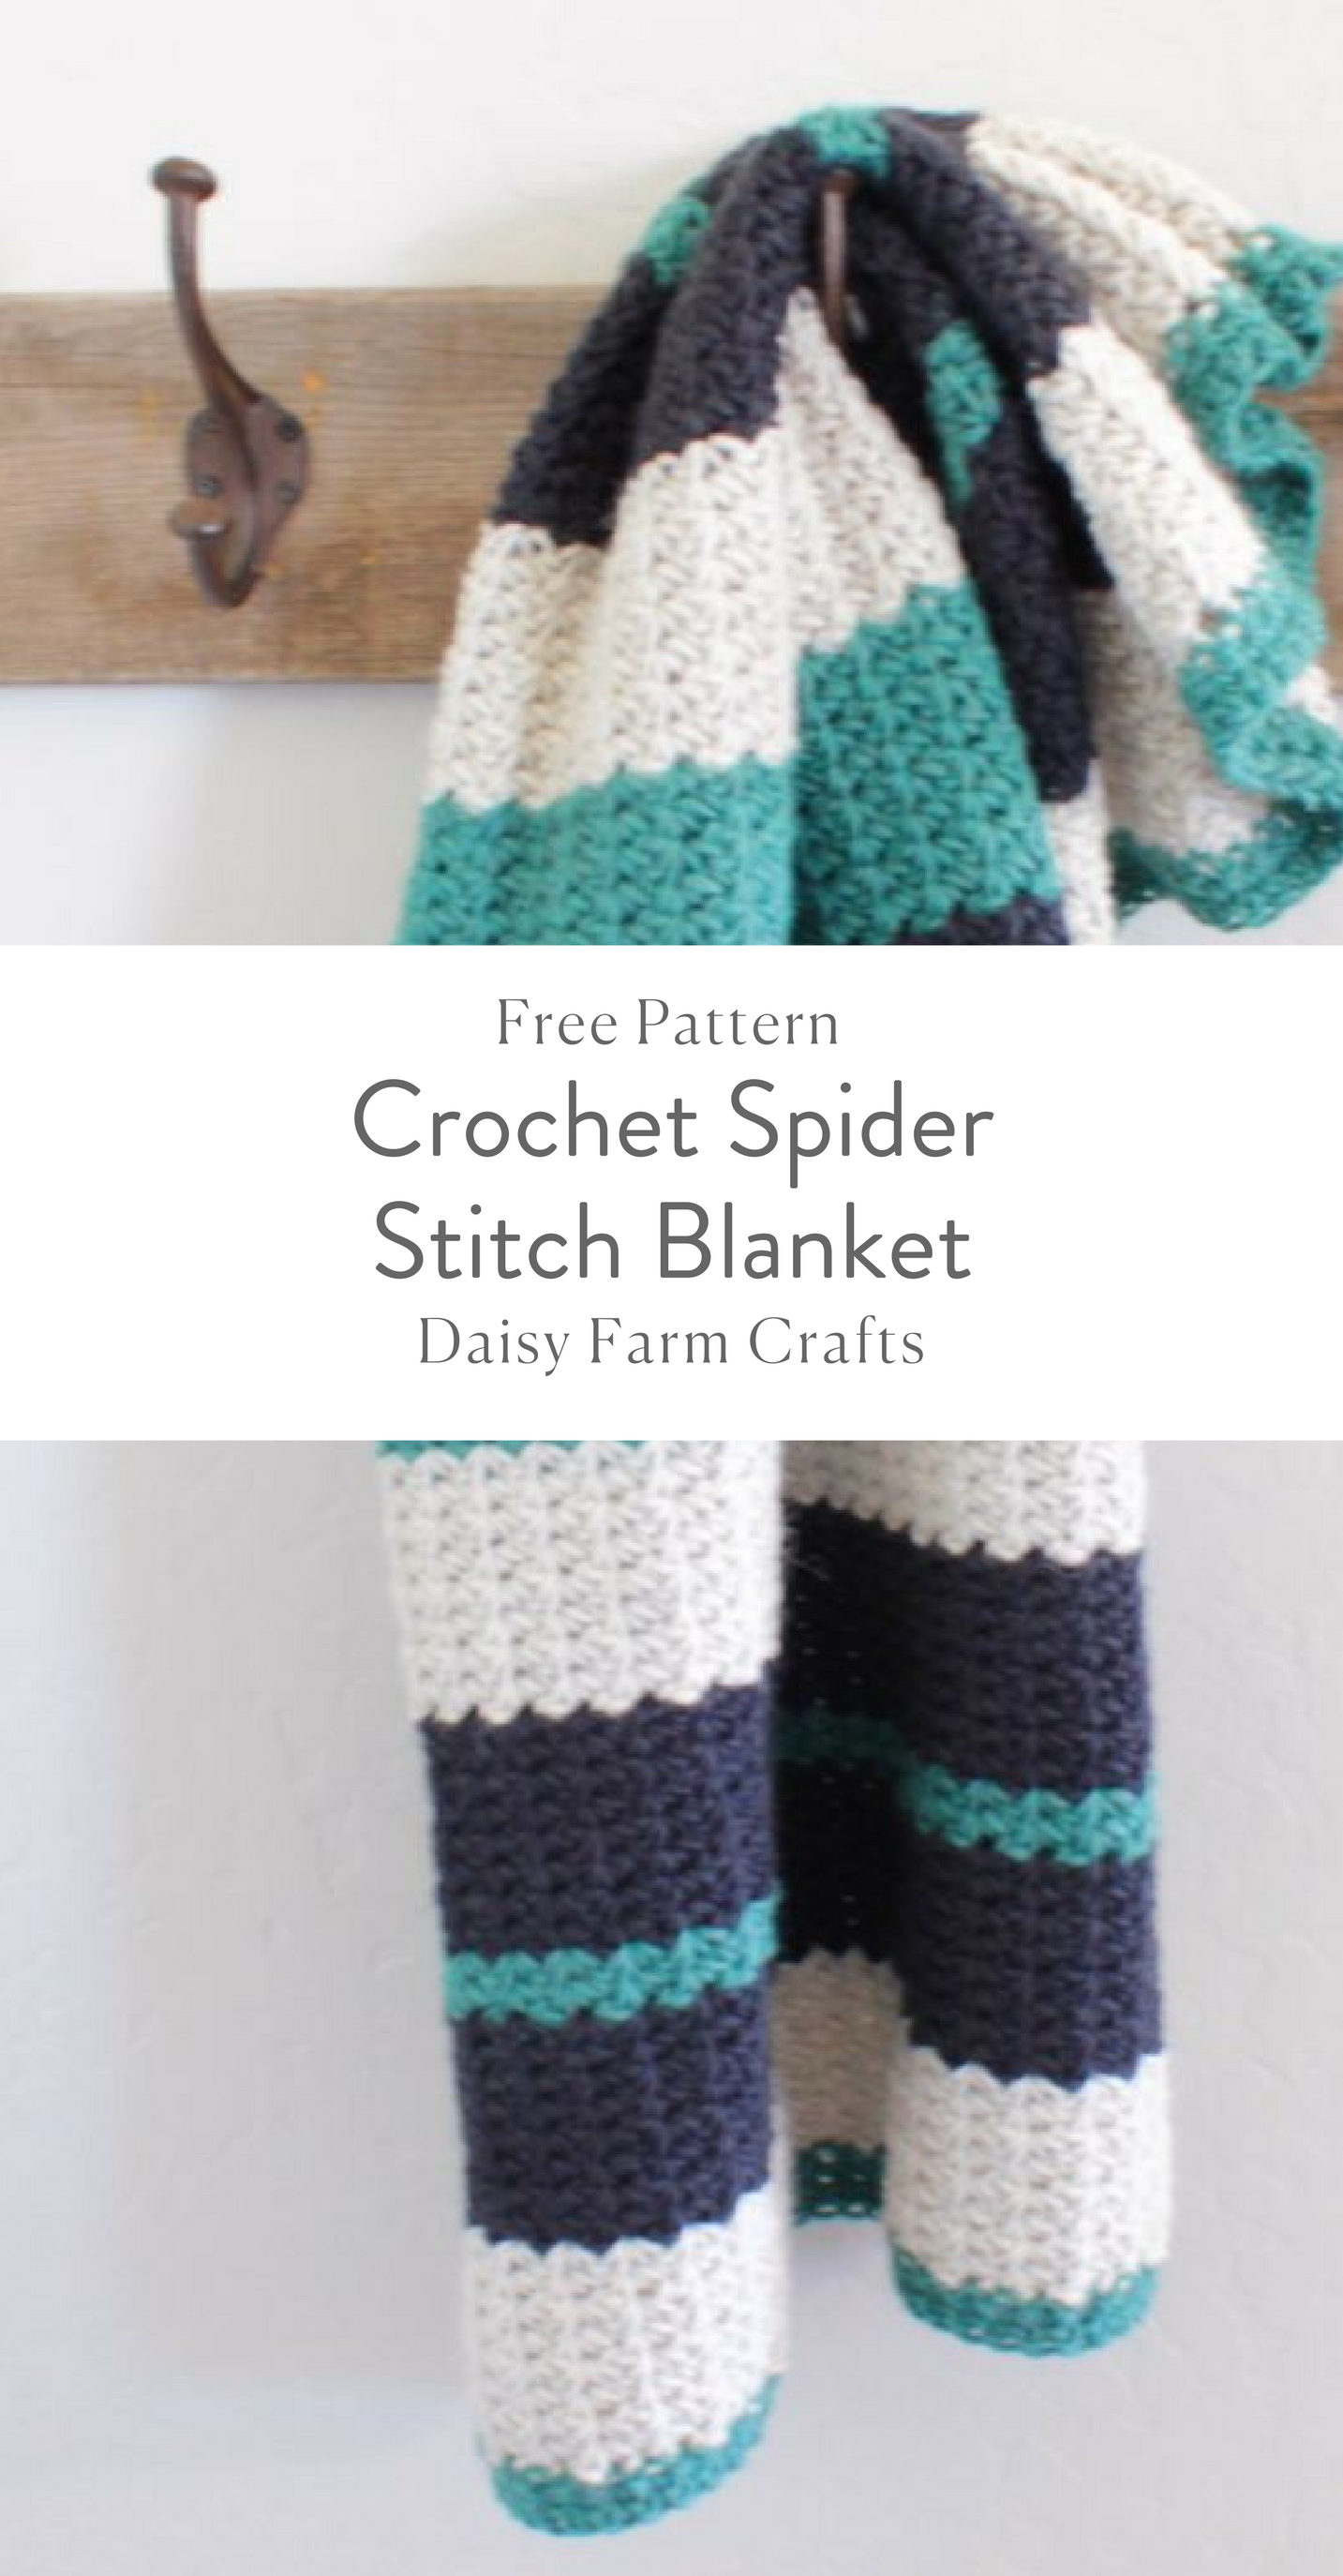 Free Pattern - Crochet Spider Stitch Blanket | Projects to Try ...